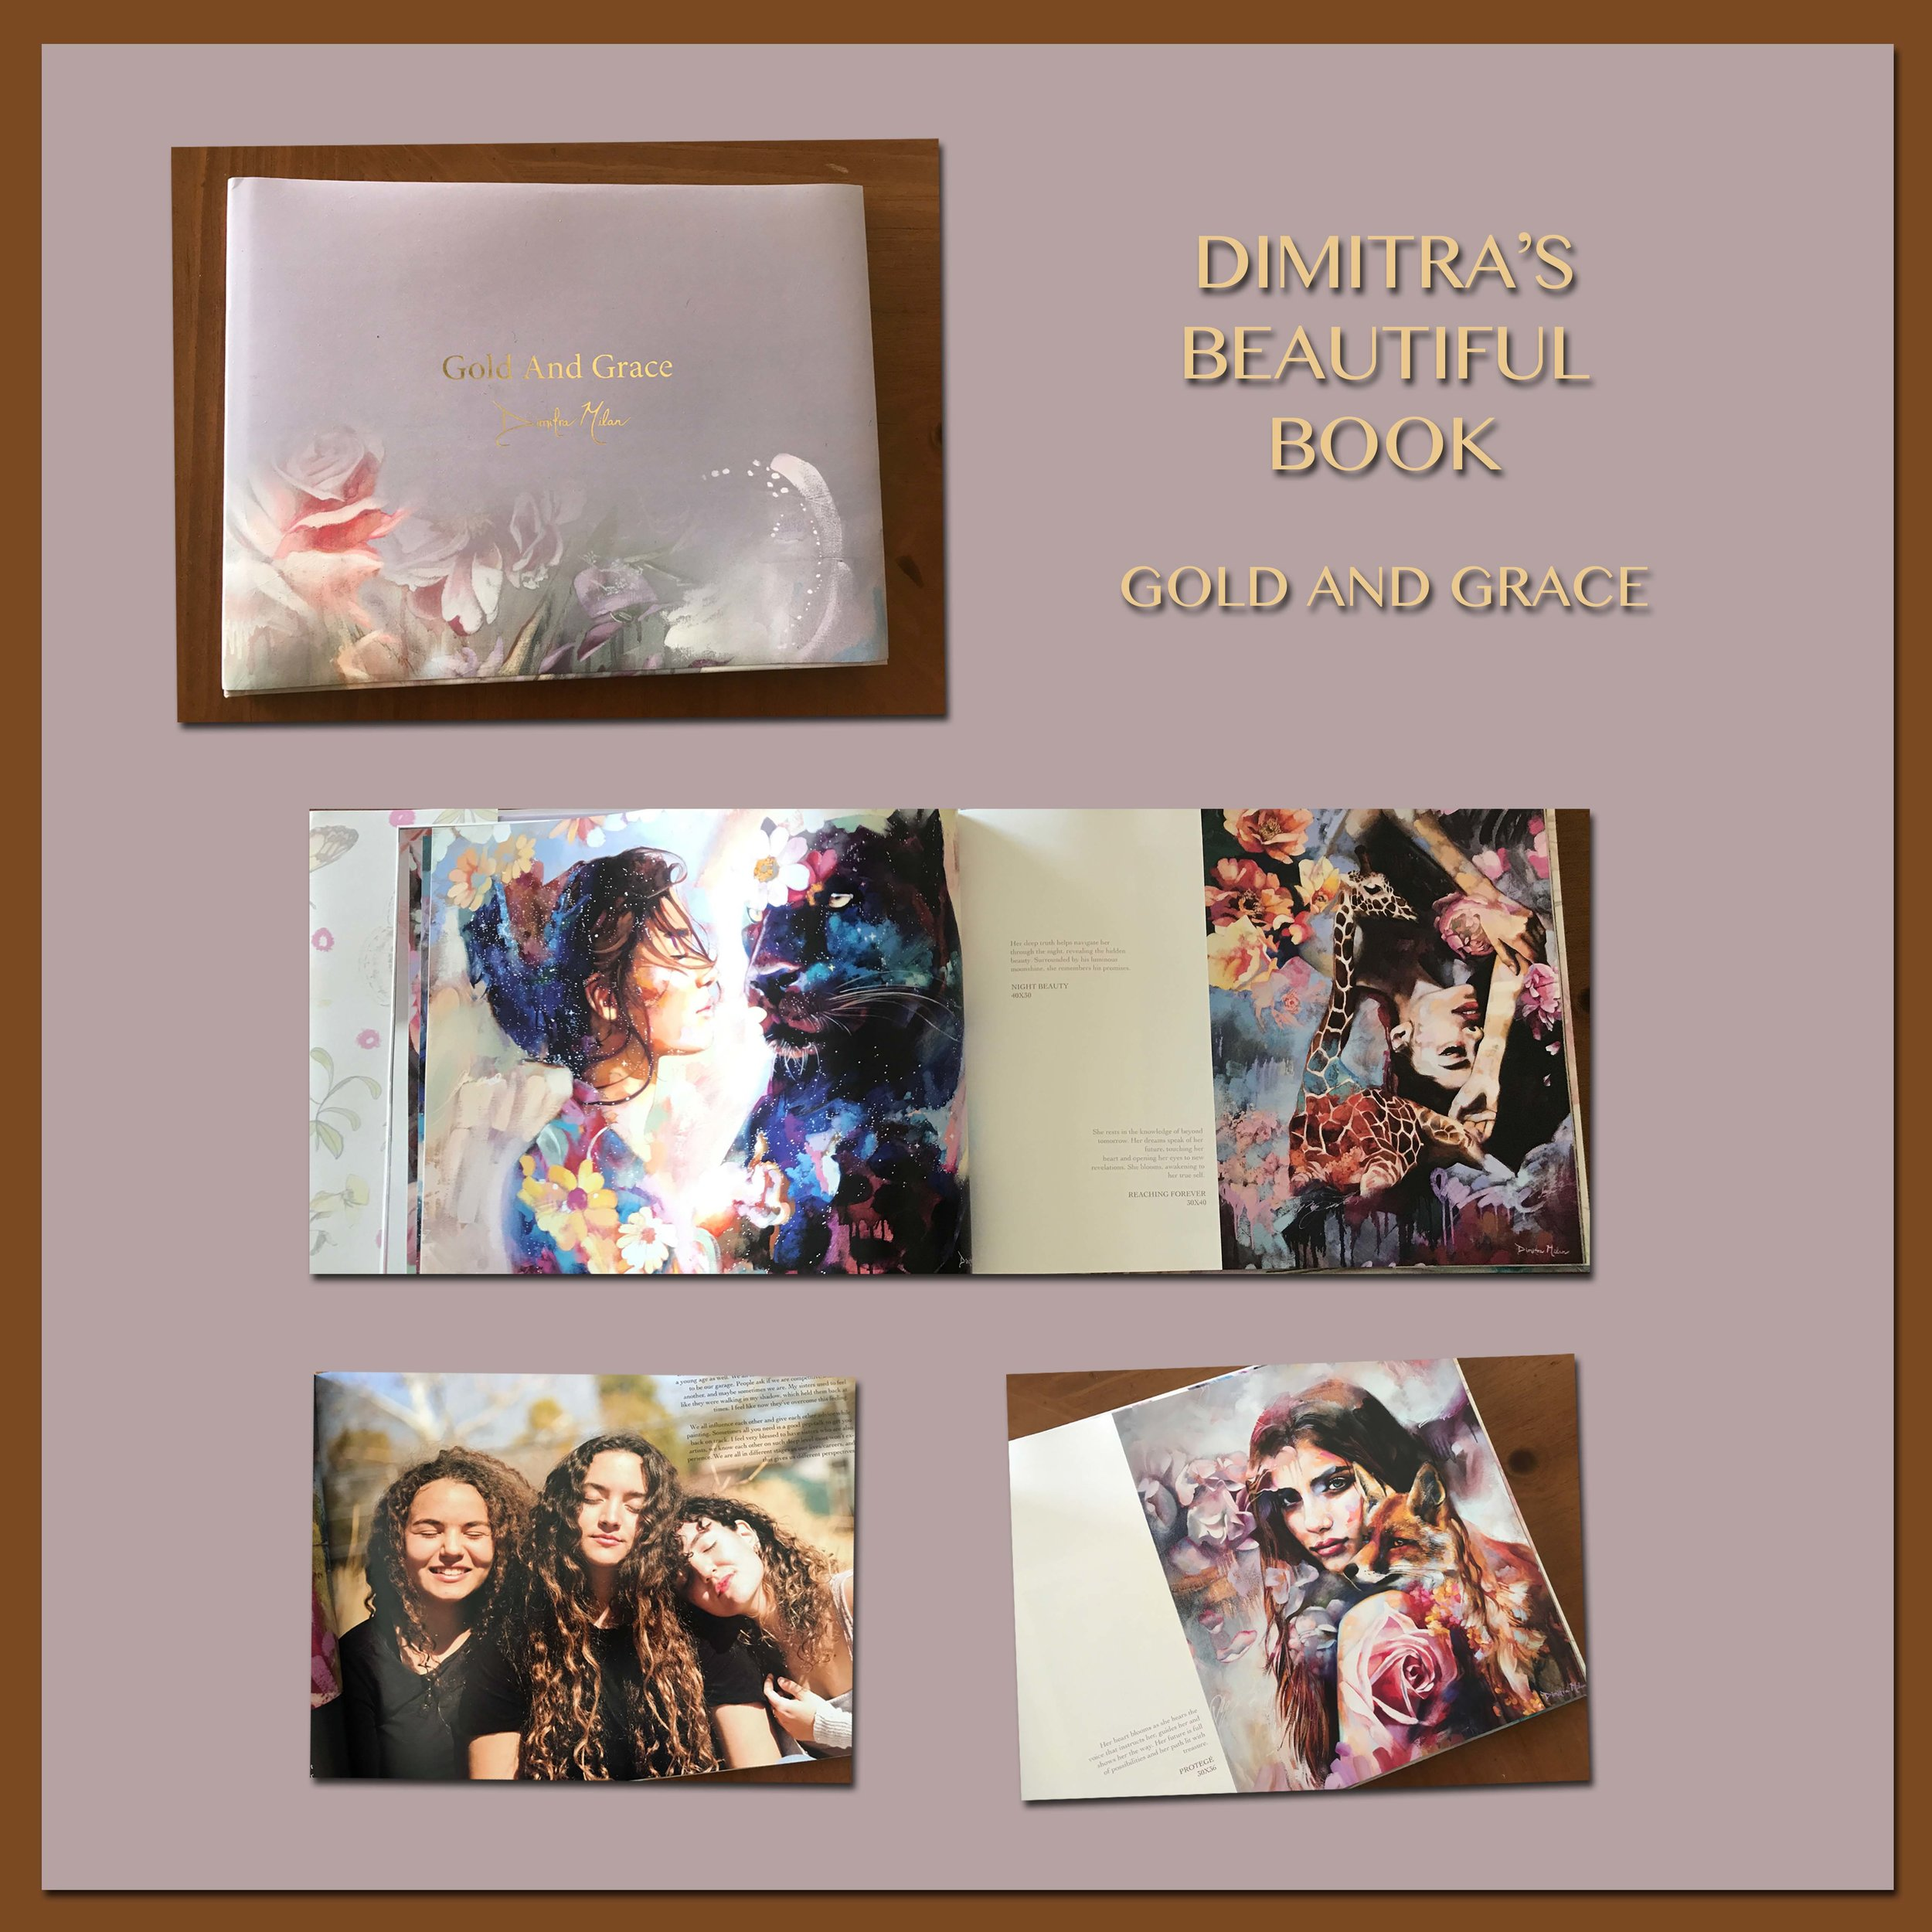 DIMITRA MILAN'S MOST BEAUTFIUL ART BOOK.CHECK IT OUT. - SEE HER WEBSITE LINK TO PURCHASE IT. AND TO SEE HER LOVELY SISTER'S ART. (DAFNI AND DALIA)